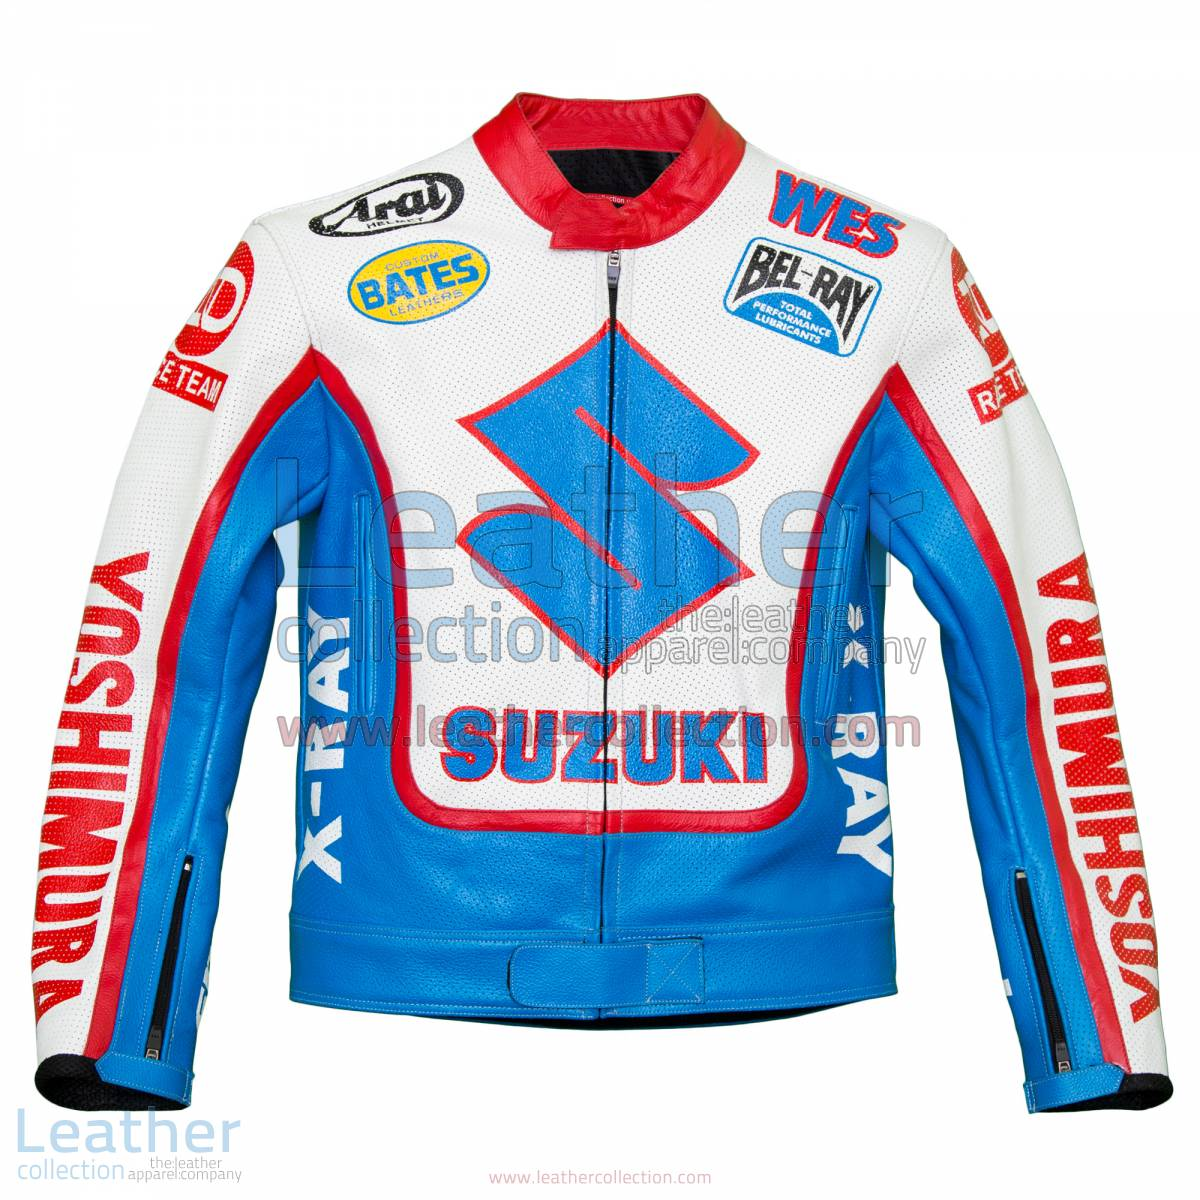 Wes Cooley Yoshimura Suzuki AMA Race Jacket | Wes Cooley Yoshimura Suzuki AMA race jacket